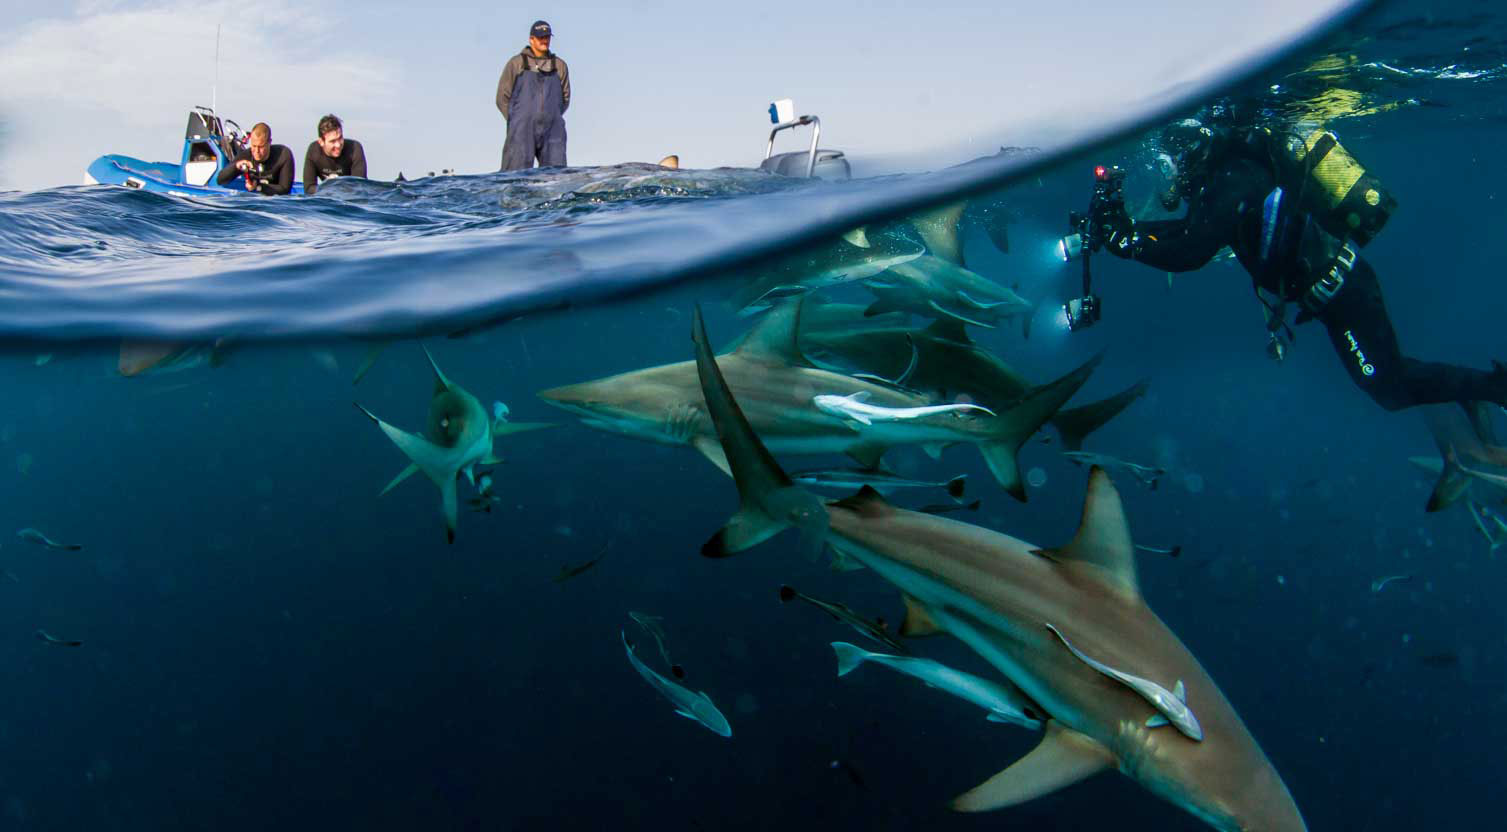 Sharks of Aliwal Shoal